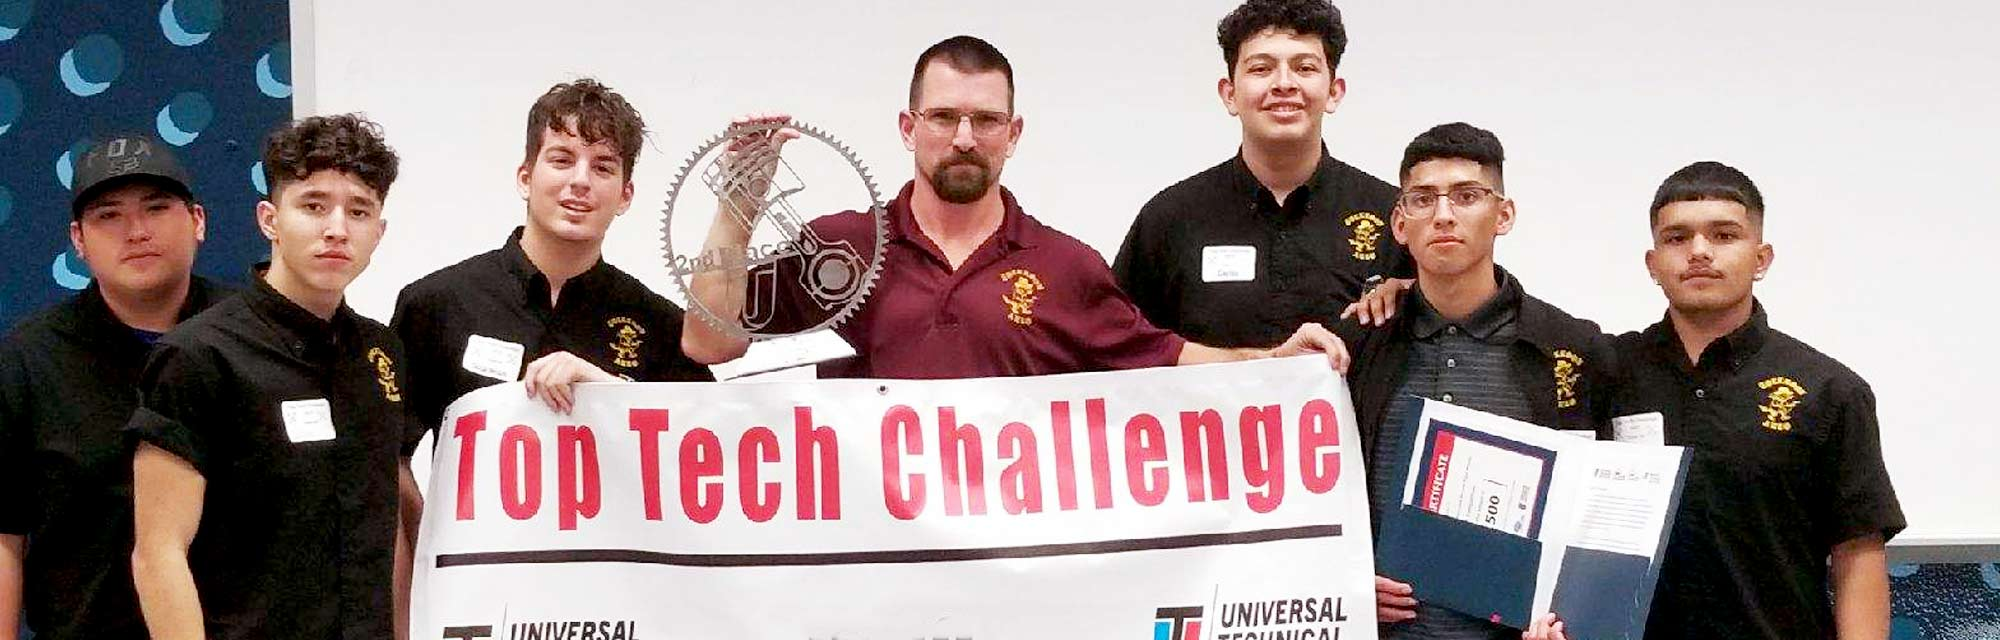 An image of a Universal Technical Institute instructor with students from the Top Tech challenge